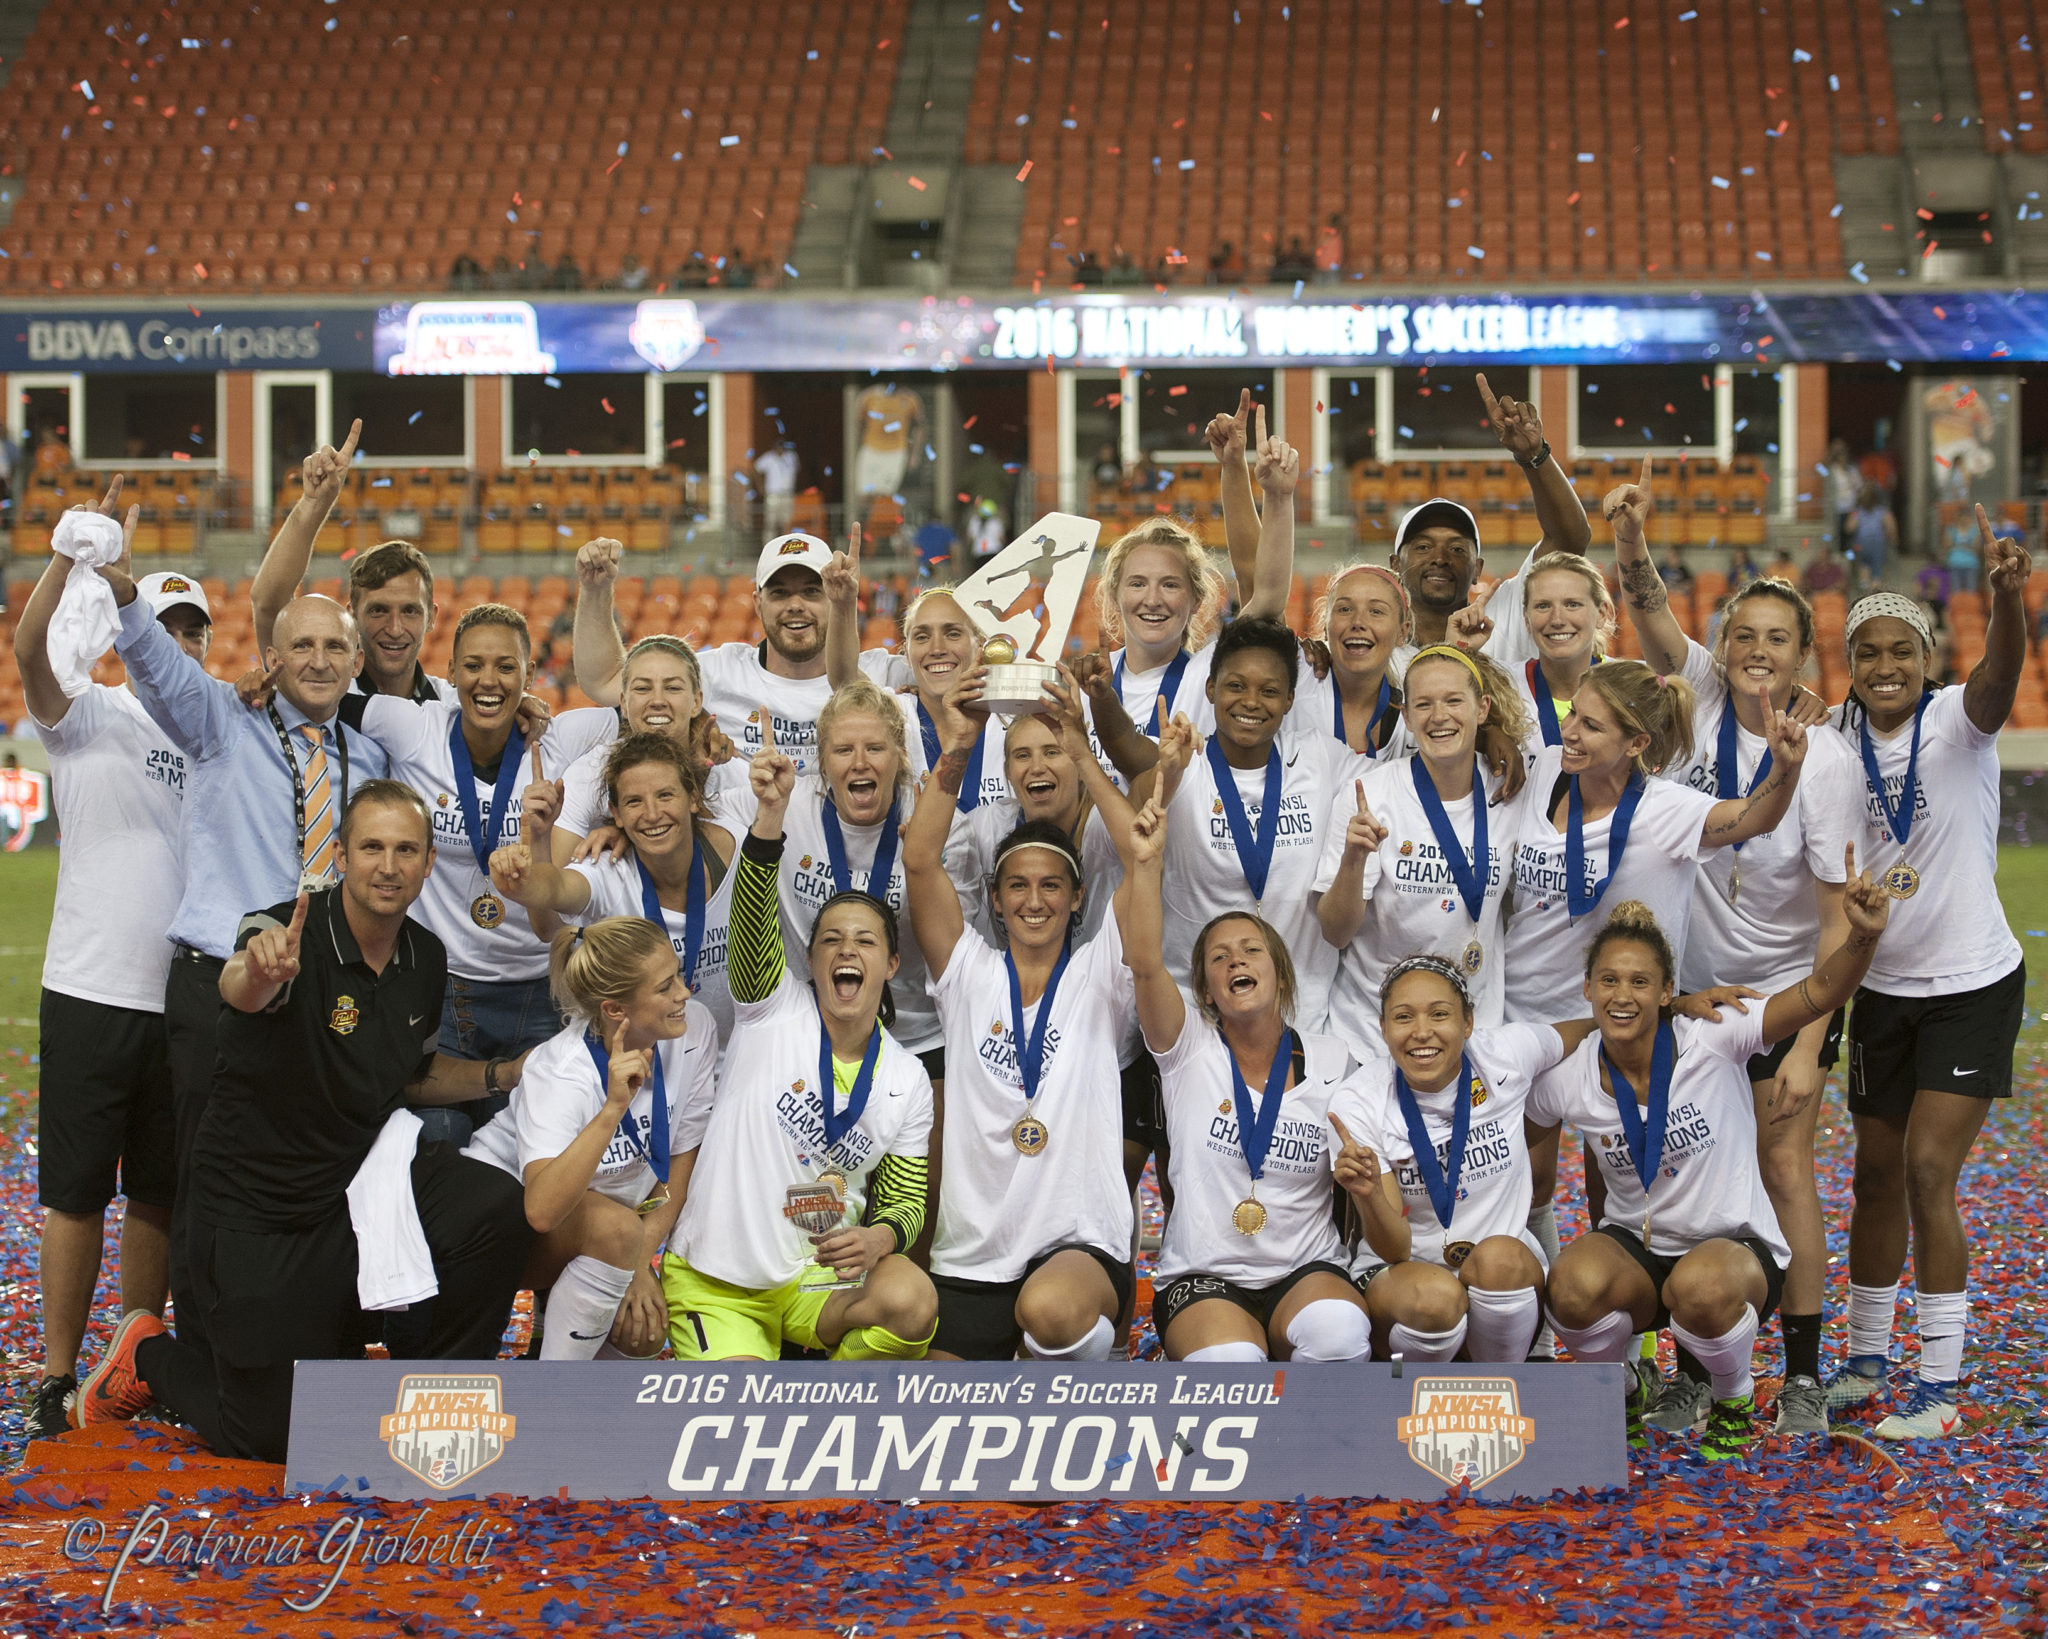 Tickets for the 2017 NWSL Championship will go on sale on August 15. (photo by Patricia Giobetti for The Equalizer)